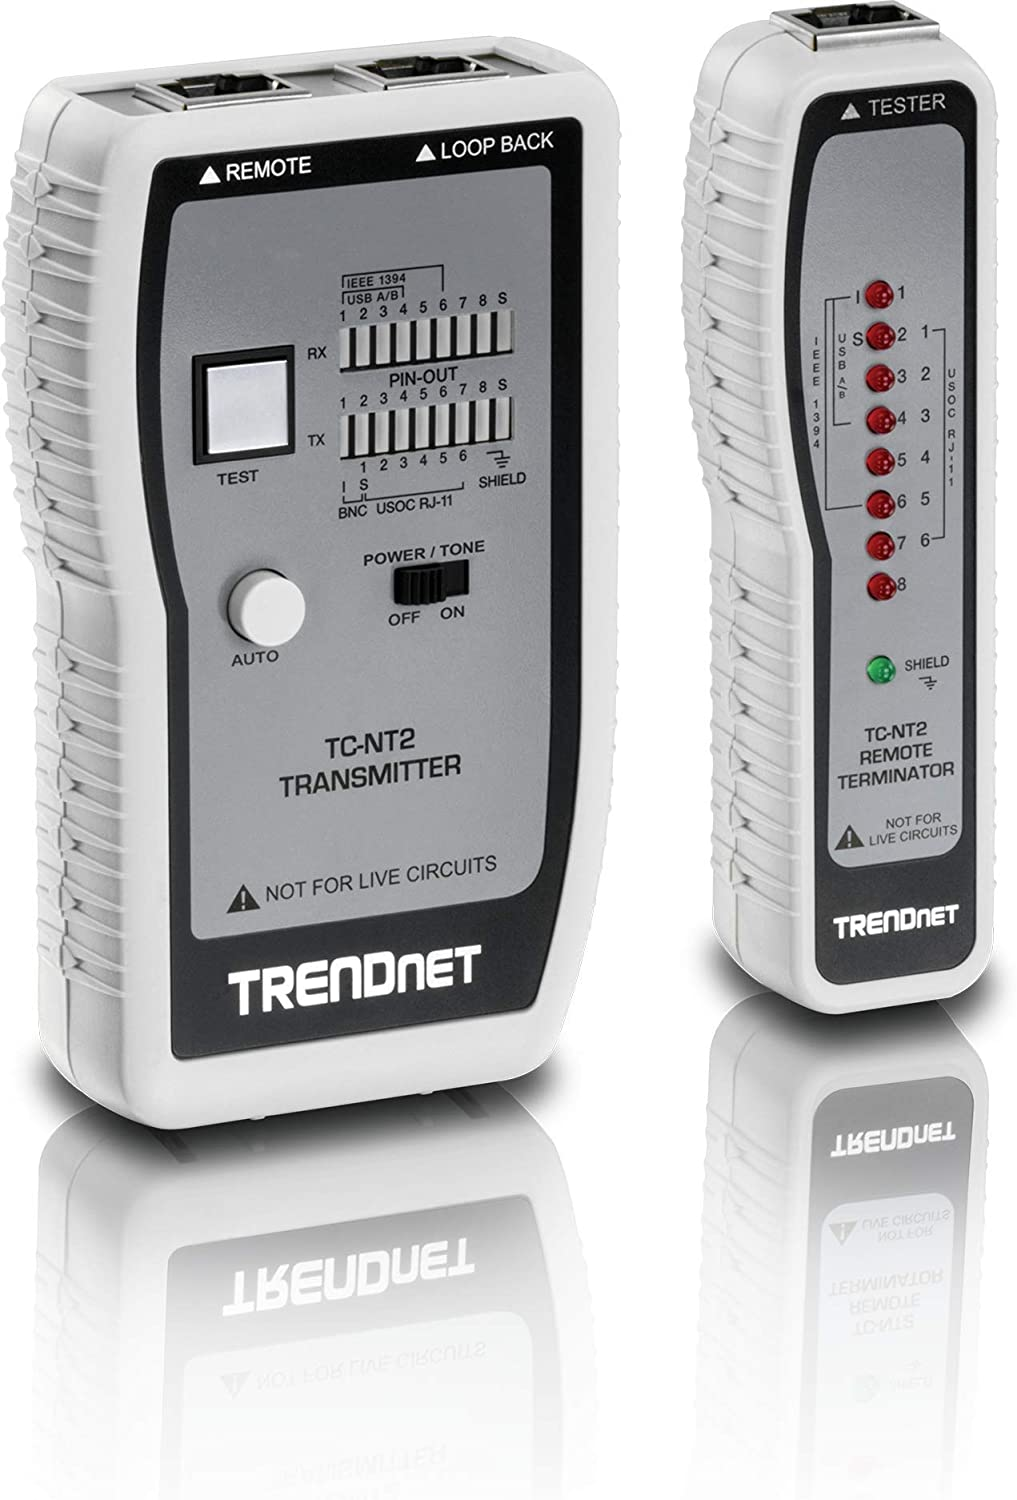 PoE+ LED Display Wattage TRENDnet Inline PoE Tester Battery-Free Voltage Polarity Tests 4PPoE Troubleshoot PoE Issues PoE /& Passive PoE Technology TC-NTP1 Amperage IEEE 802.3af//at//bt